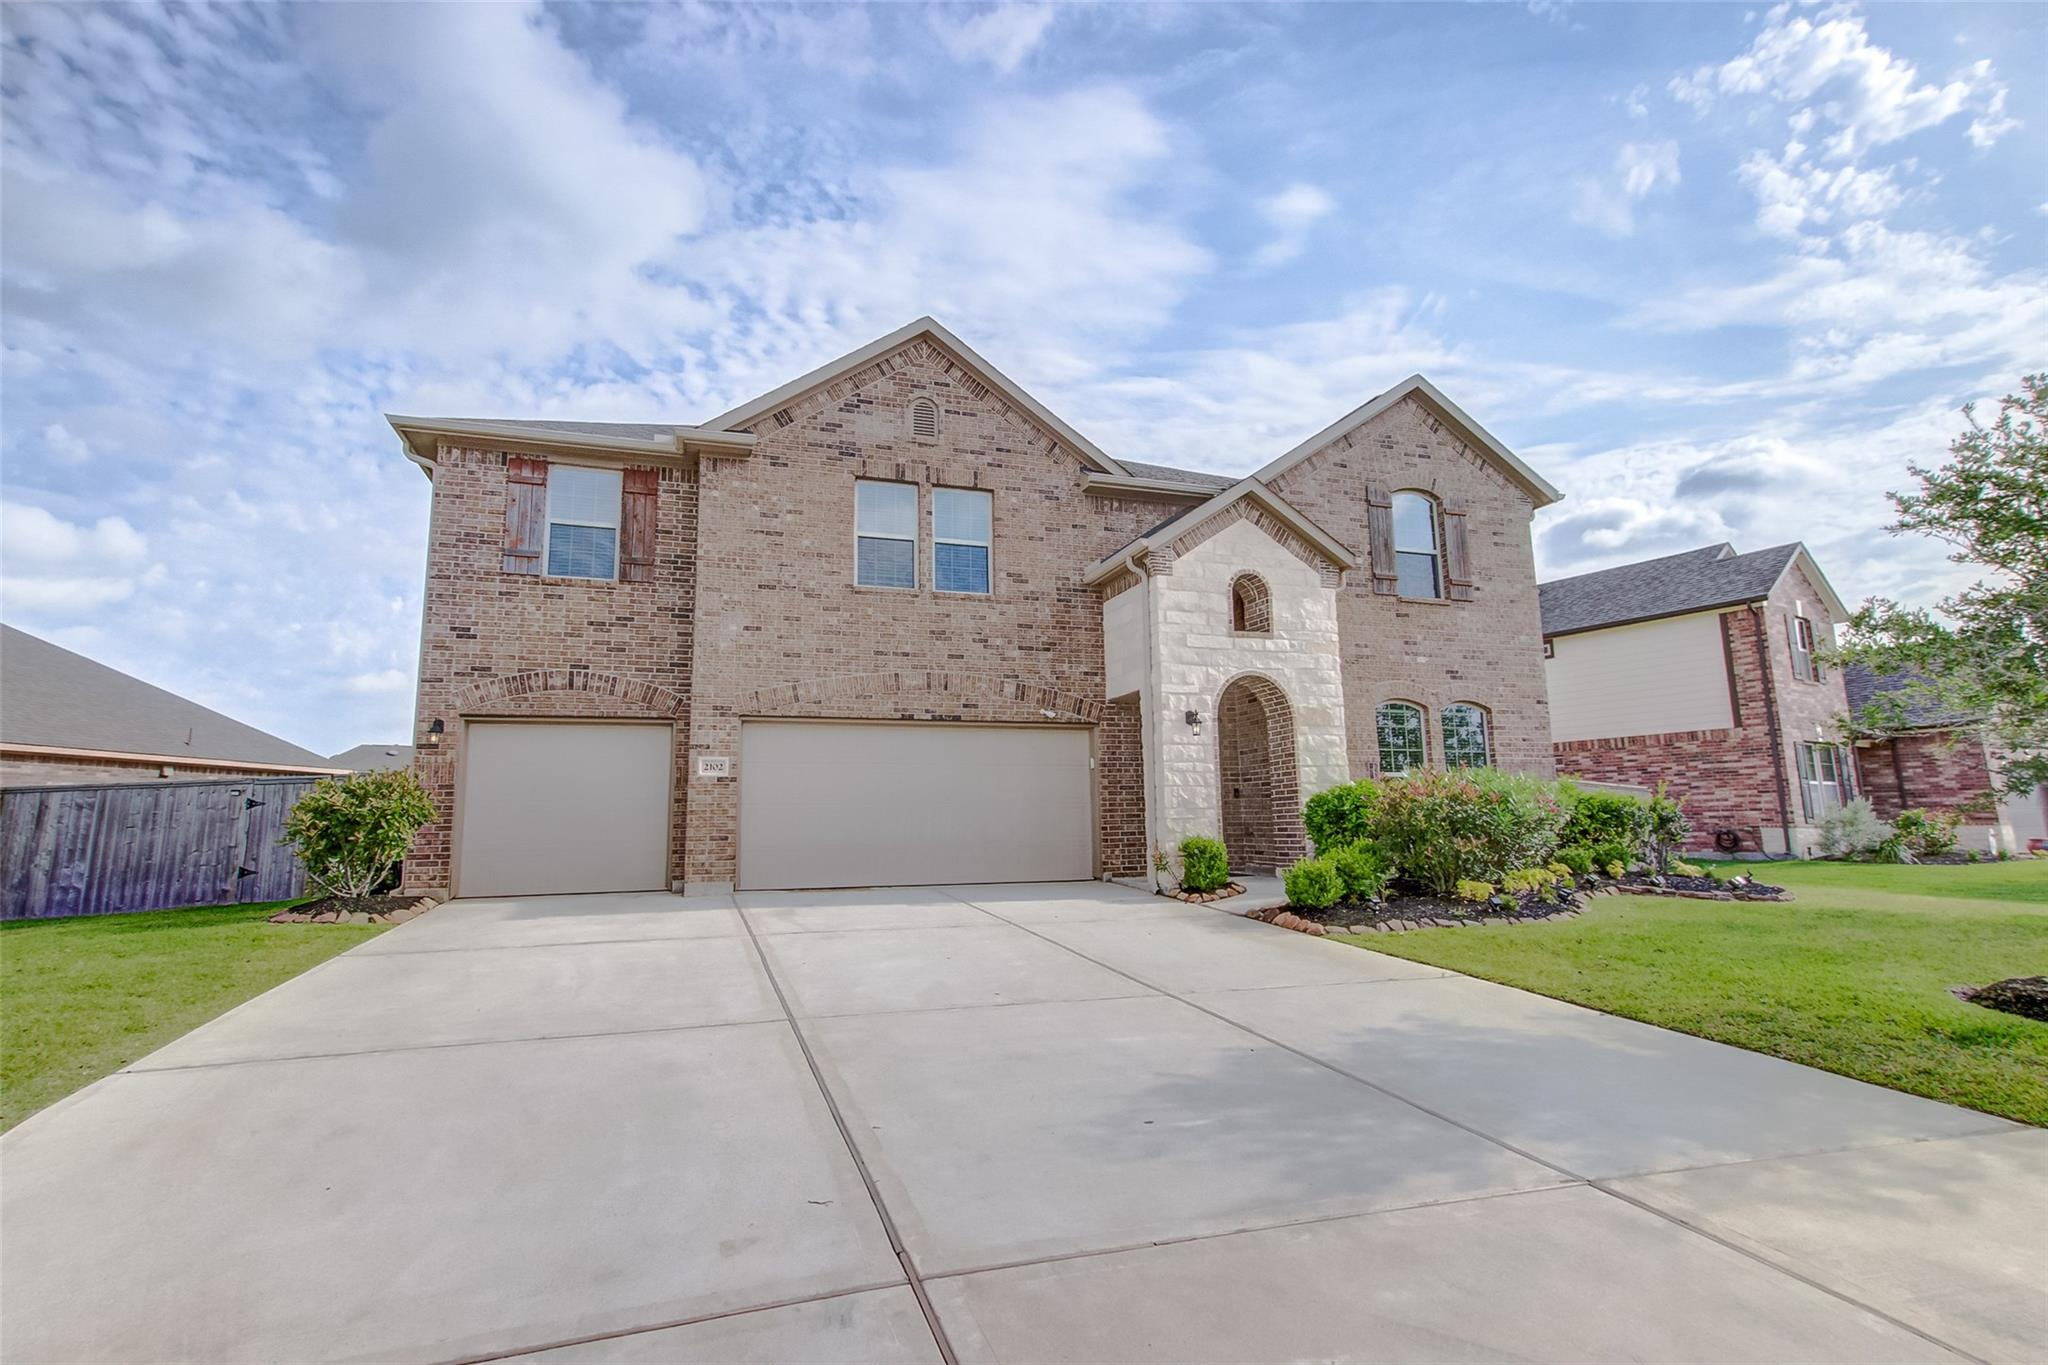 2102 Sunset Terrace Lane Property Photo - Pearland, TX real estate listing